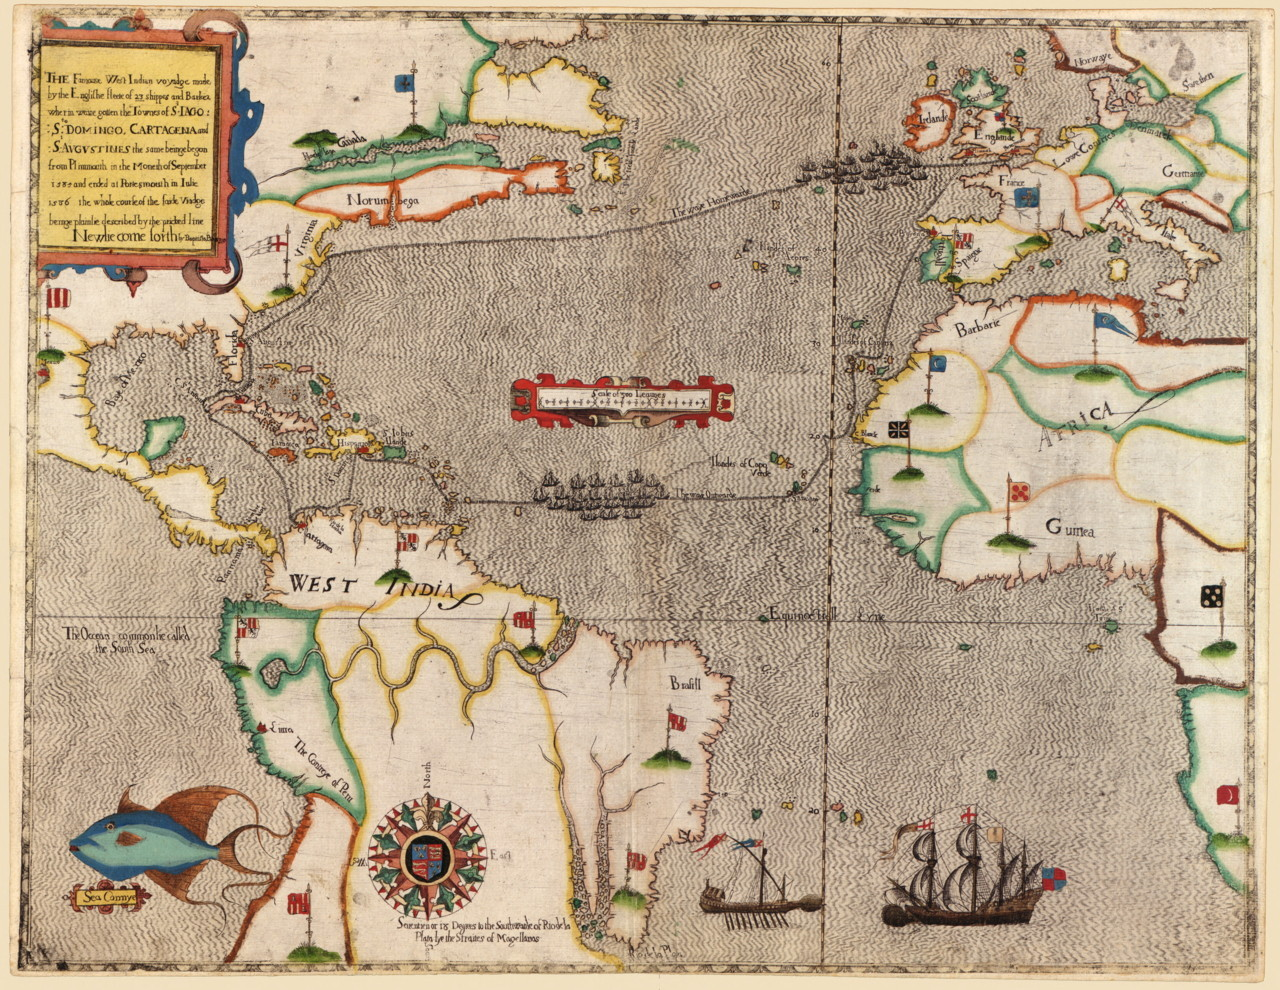 cartographymaps:  Baptista Boazio, 1589, Route of Drake's Voyage  In the year 1585, the pirate Sir Francis Drake sailed out of Cape Verde in Western Africa destined for the Caribbean, where he sacked the Spanish colonial ports of Cartagena de Indias (in present-day Colombia), Santo Domingo (in present-day Dominican Republic) and San Agustín (in present-day Florida, USA). His trip was mapped and illustrated by the London-based Italian cartographer Baptista Boazio. Boazio's map of San Agustín (not shown here) is one of the earliest printed European depictions of any place in what later became the United States of America.